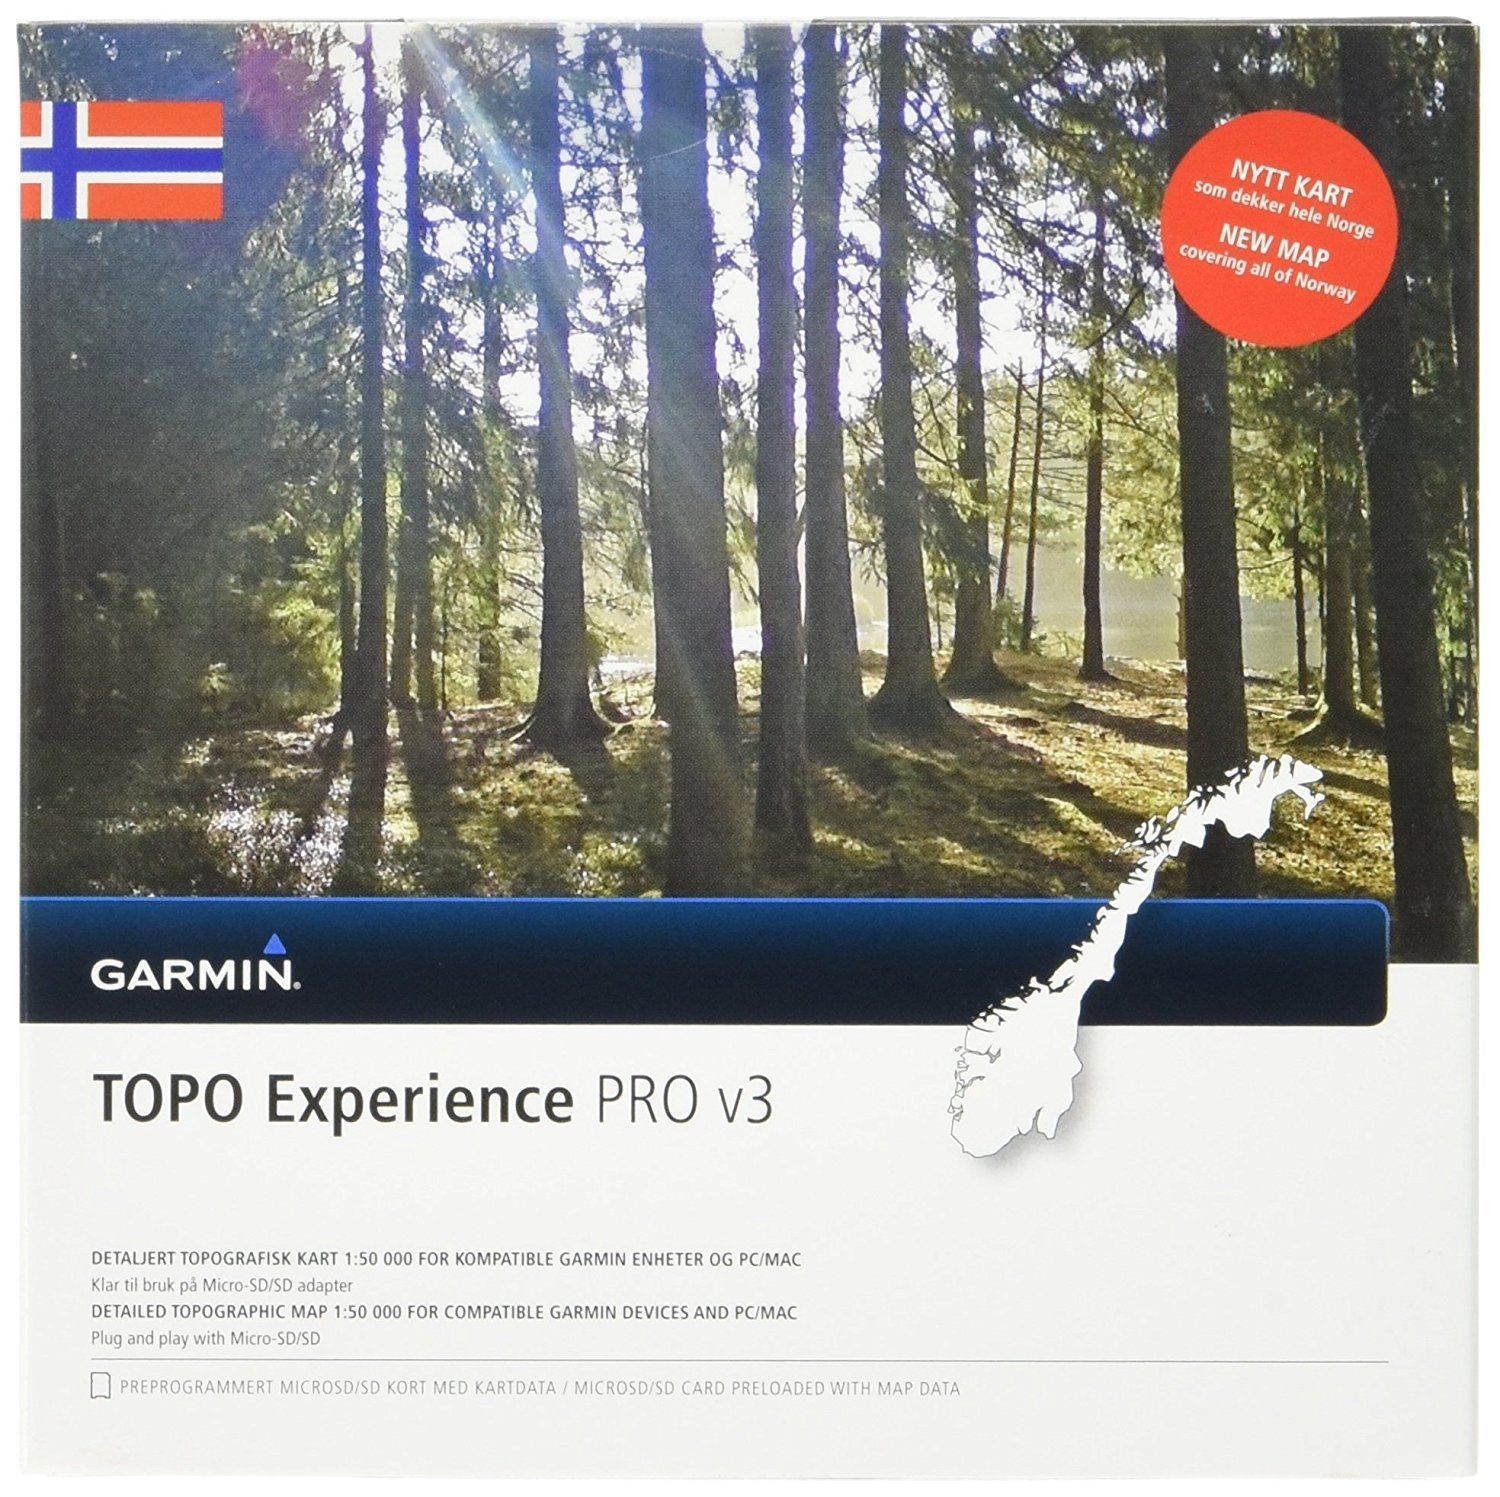 kart til garmin edge 810 Topo Norway Experience v3 Pro  microSD/SD and similar items kart til garmin edge 810